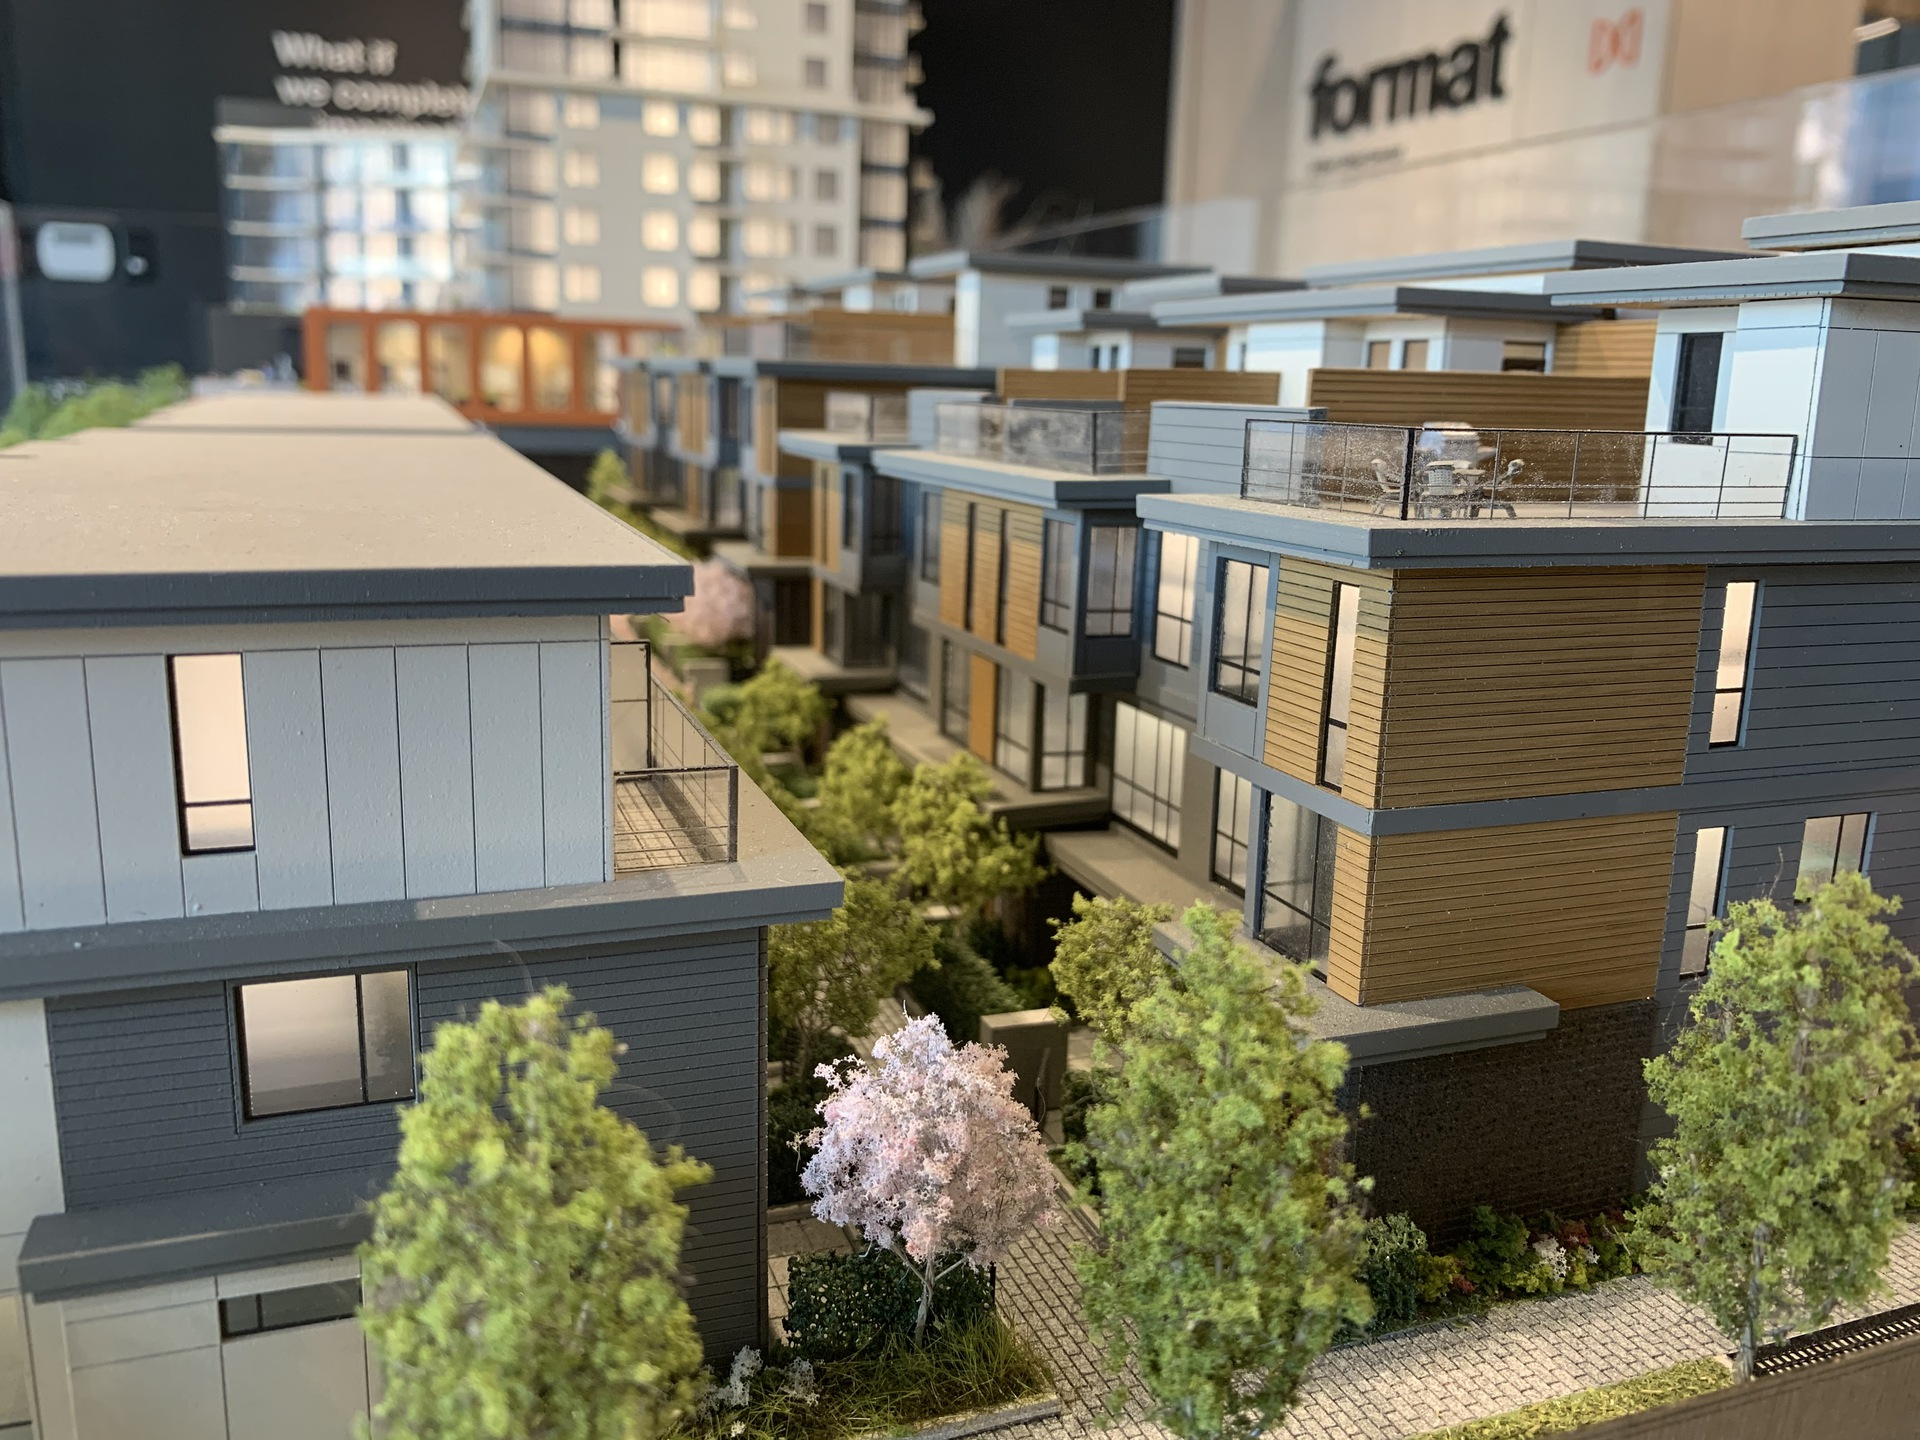 Format townhomes at FORMAT (1503 Kingsway Street, Knight, Vancouver East)